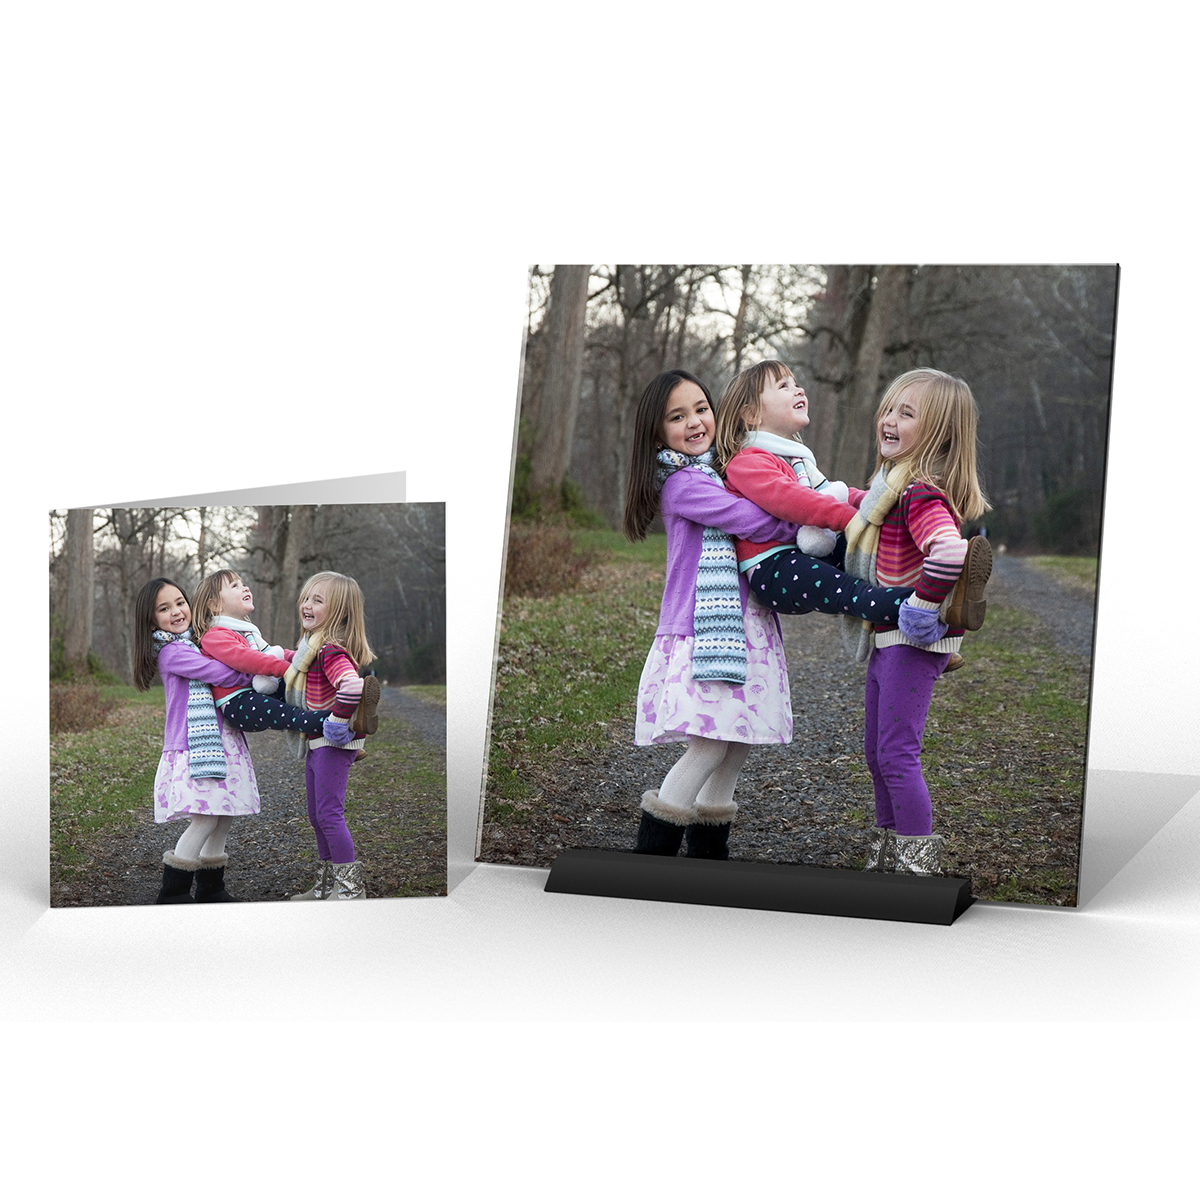 spiffysquare photo gift decor happygirls